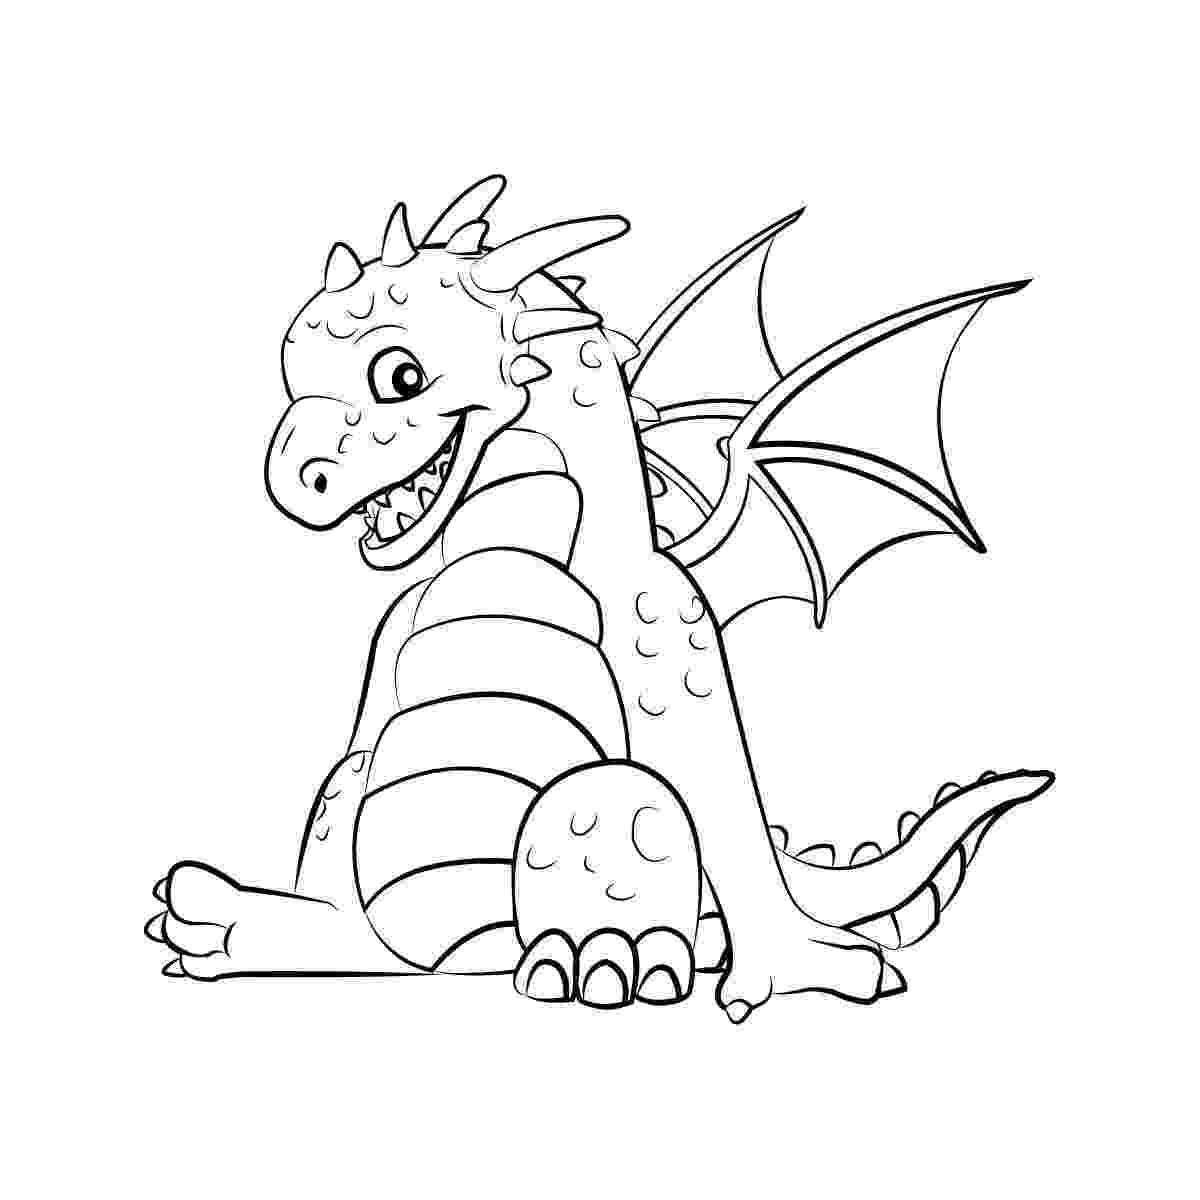 dragon coloring pages to print dragon coloring pages printable activity shelter pages coloring to print dragon